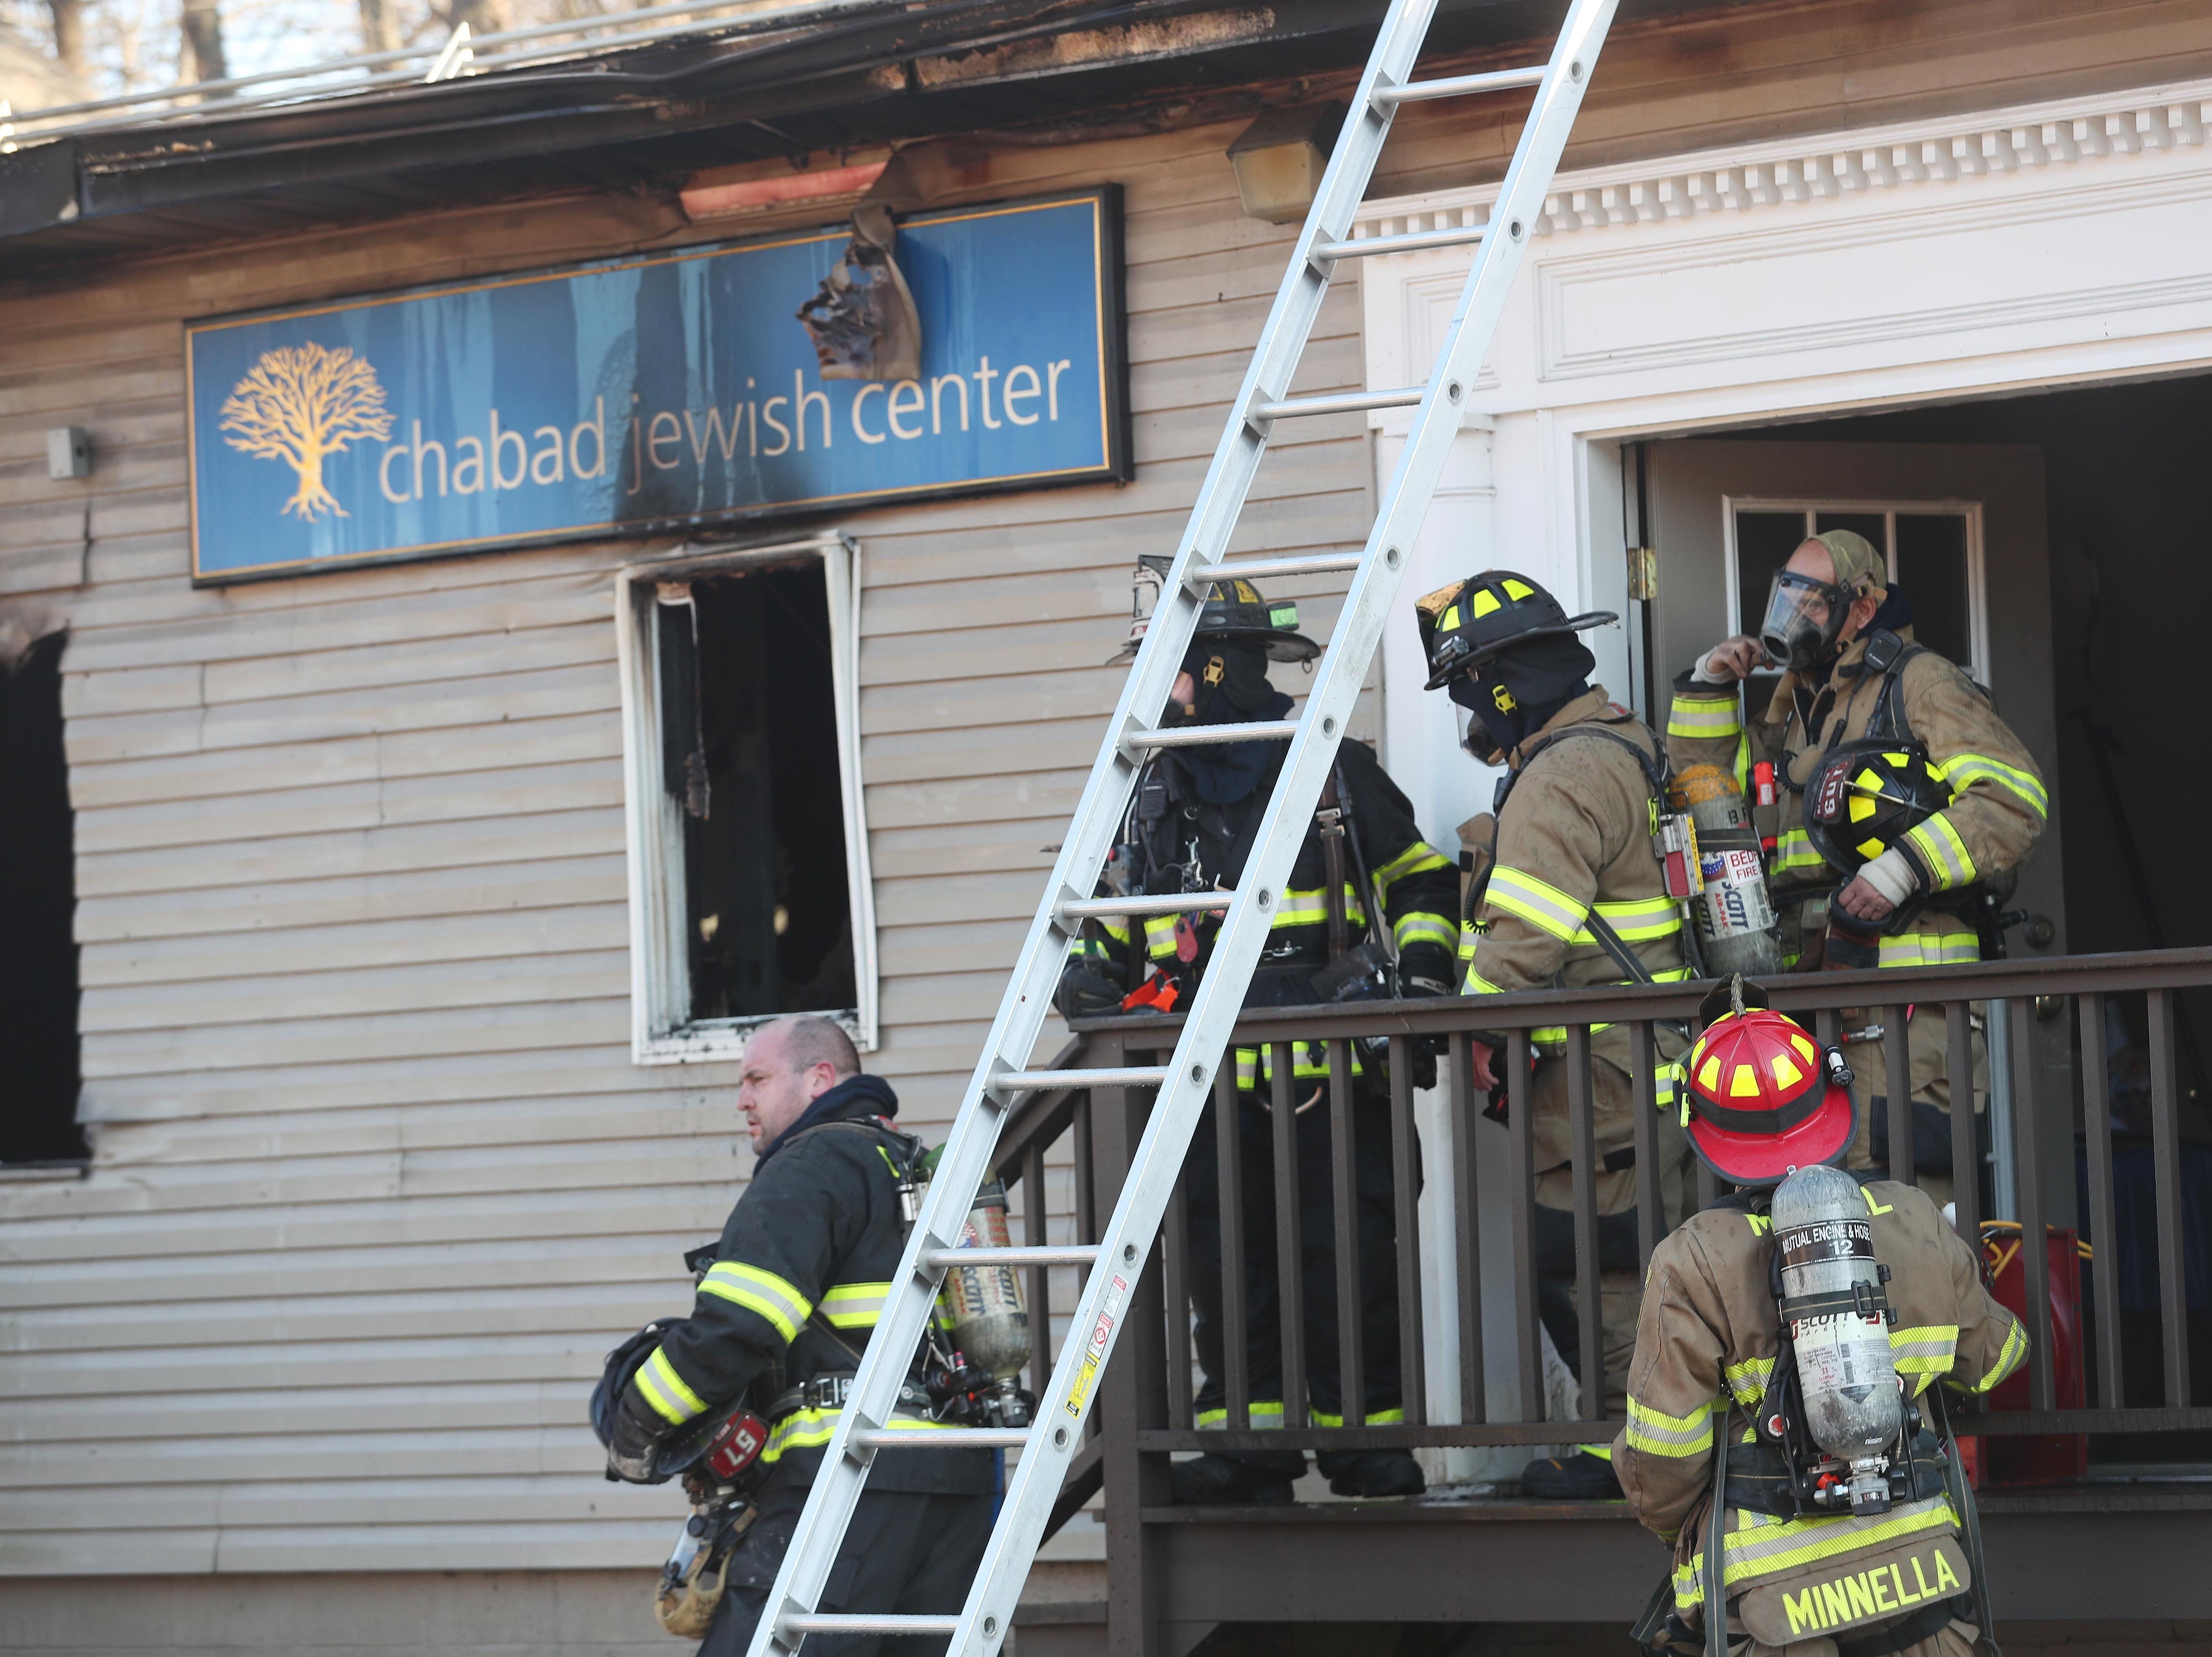 Bedfords Hills firefighters along with mutual aid from other departments, work at the scene of a fire at the Chabad Jewish Center on Railroad Avenue in Bedford Hills  Feb. 5,  2019.